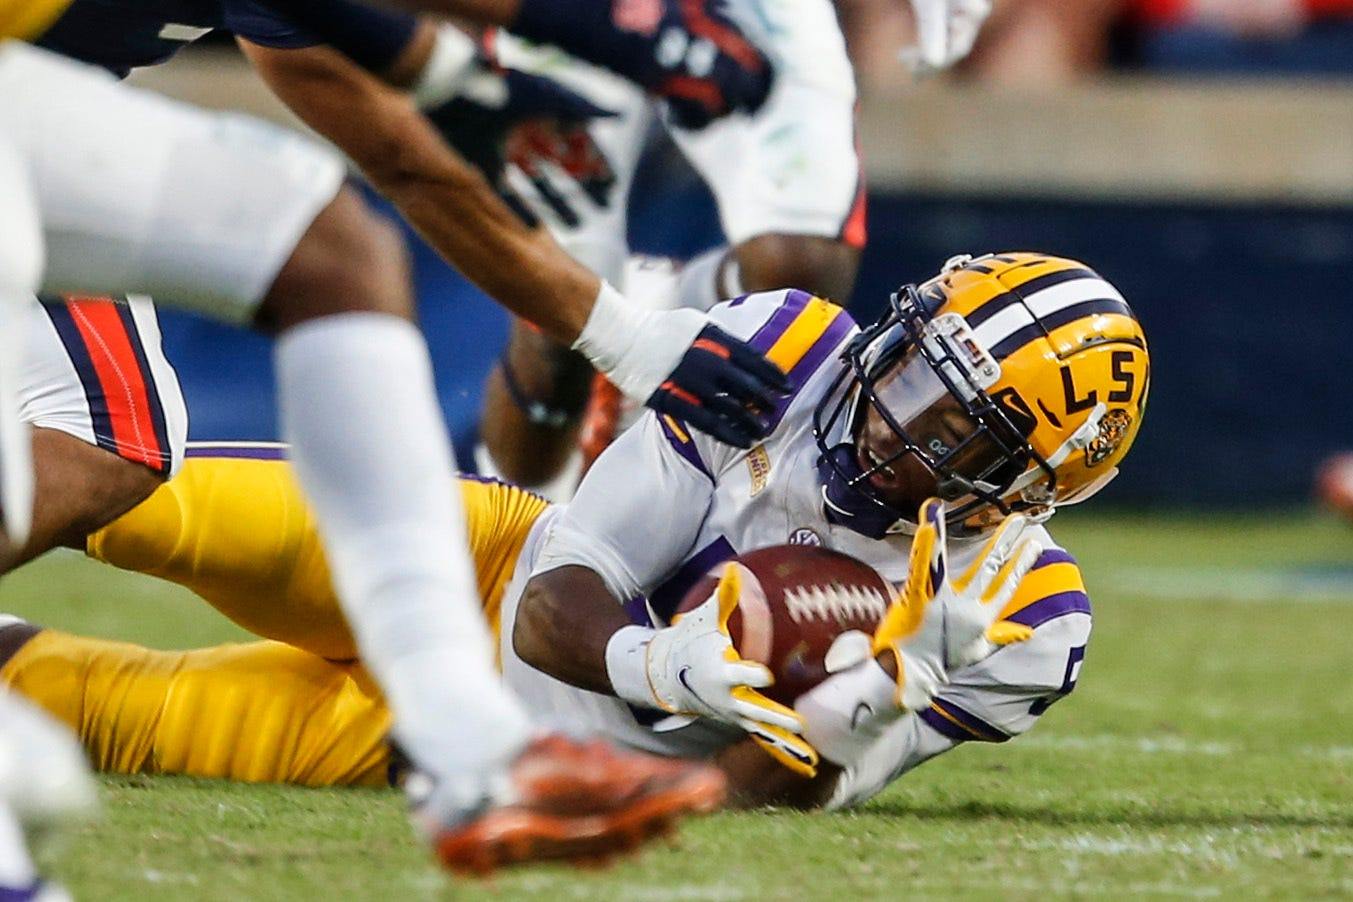 'Four white officers come out of the car with guns drawn,' says lawyer for LSU football player